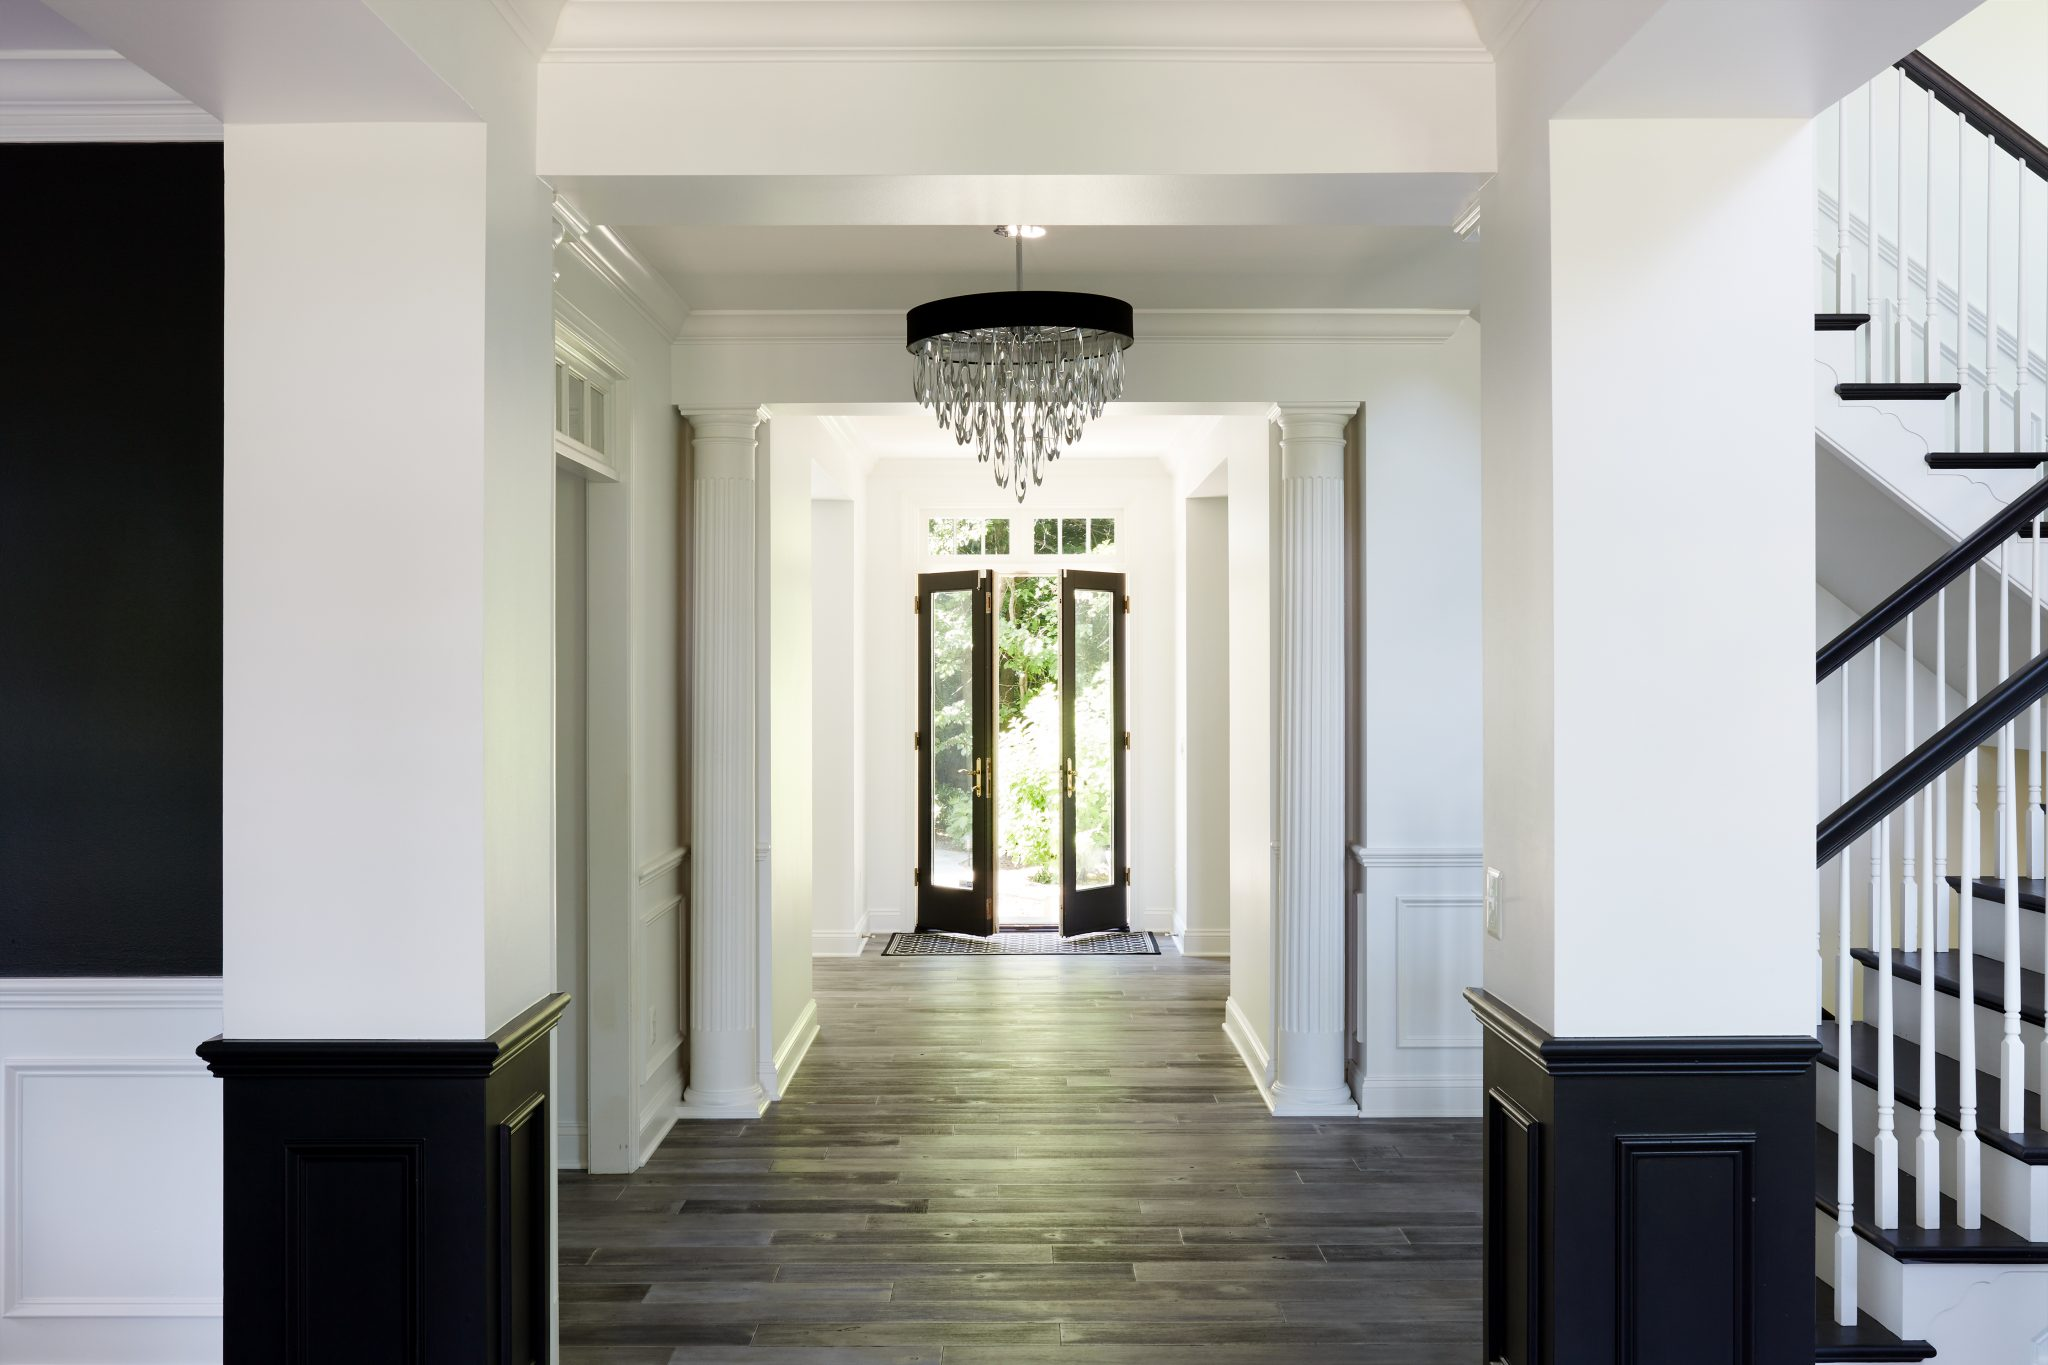 Kjos painted the wainscot on the foyer columns black for visual interest.